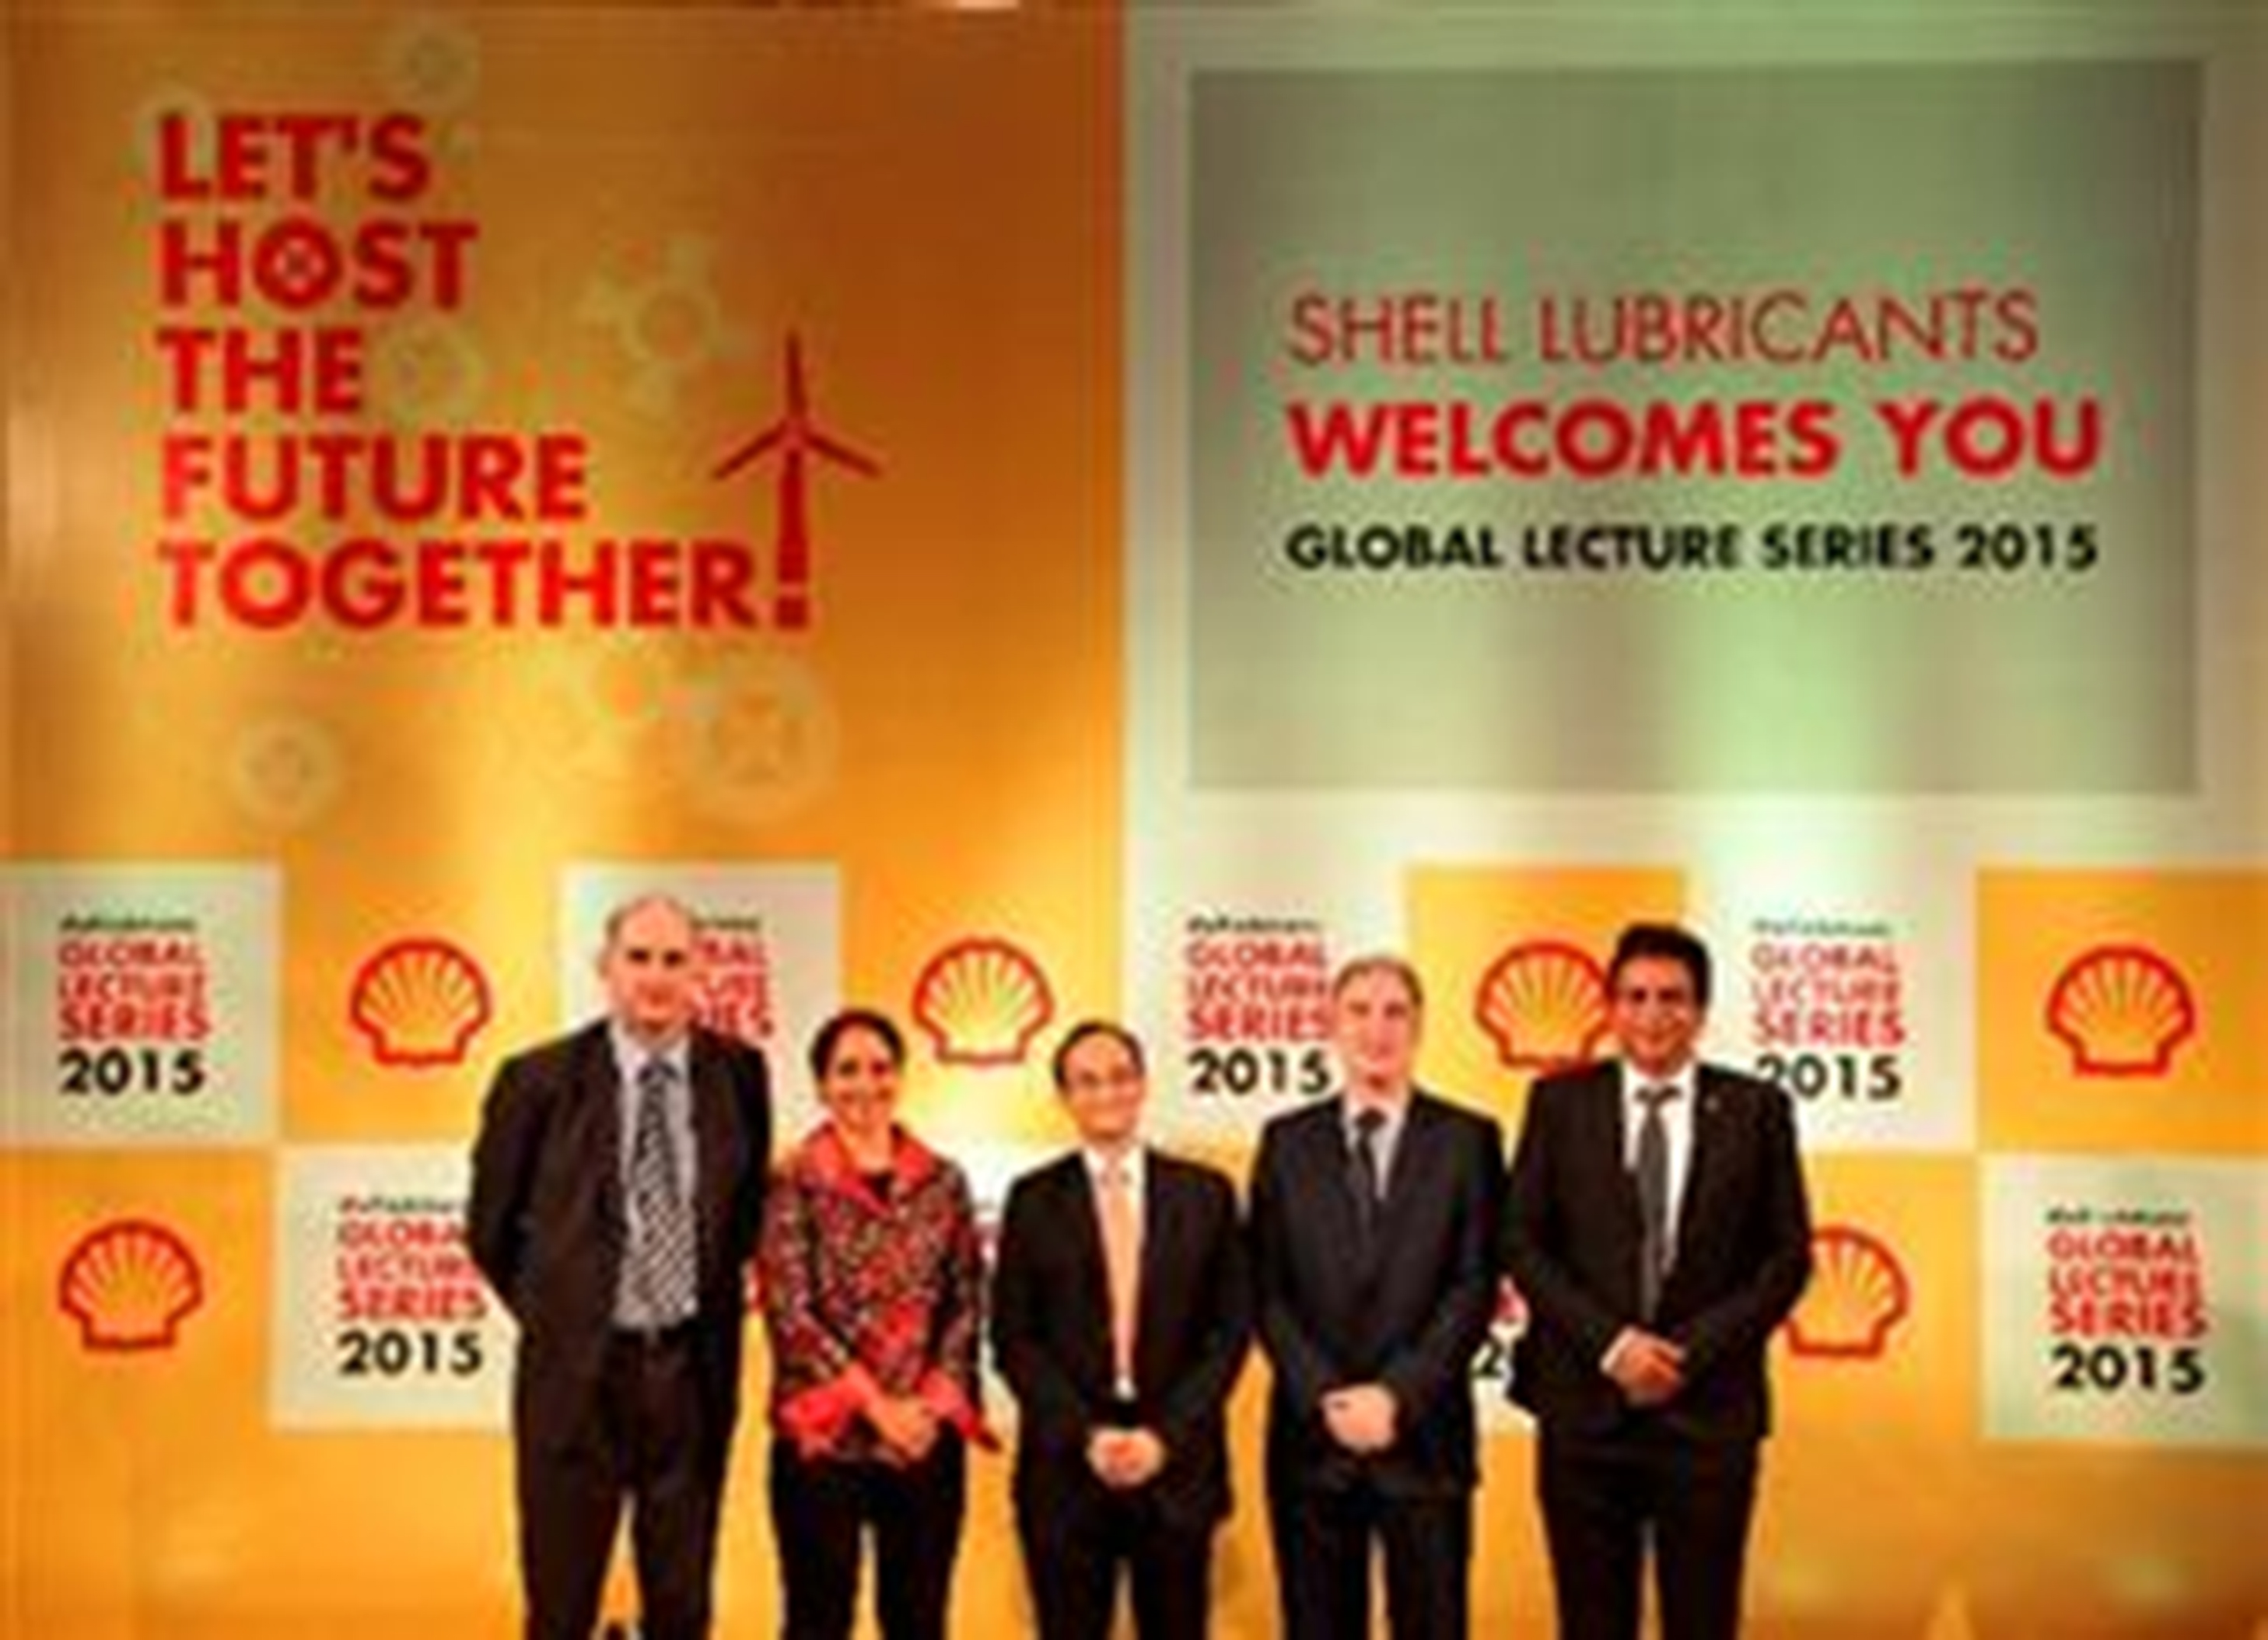 Shell Lubricants aims at developing next generation lubricants in India.